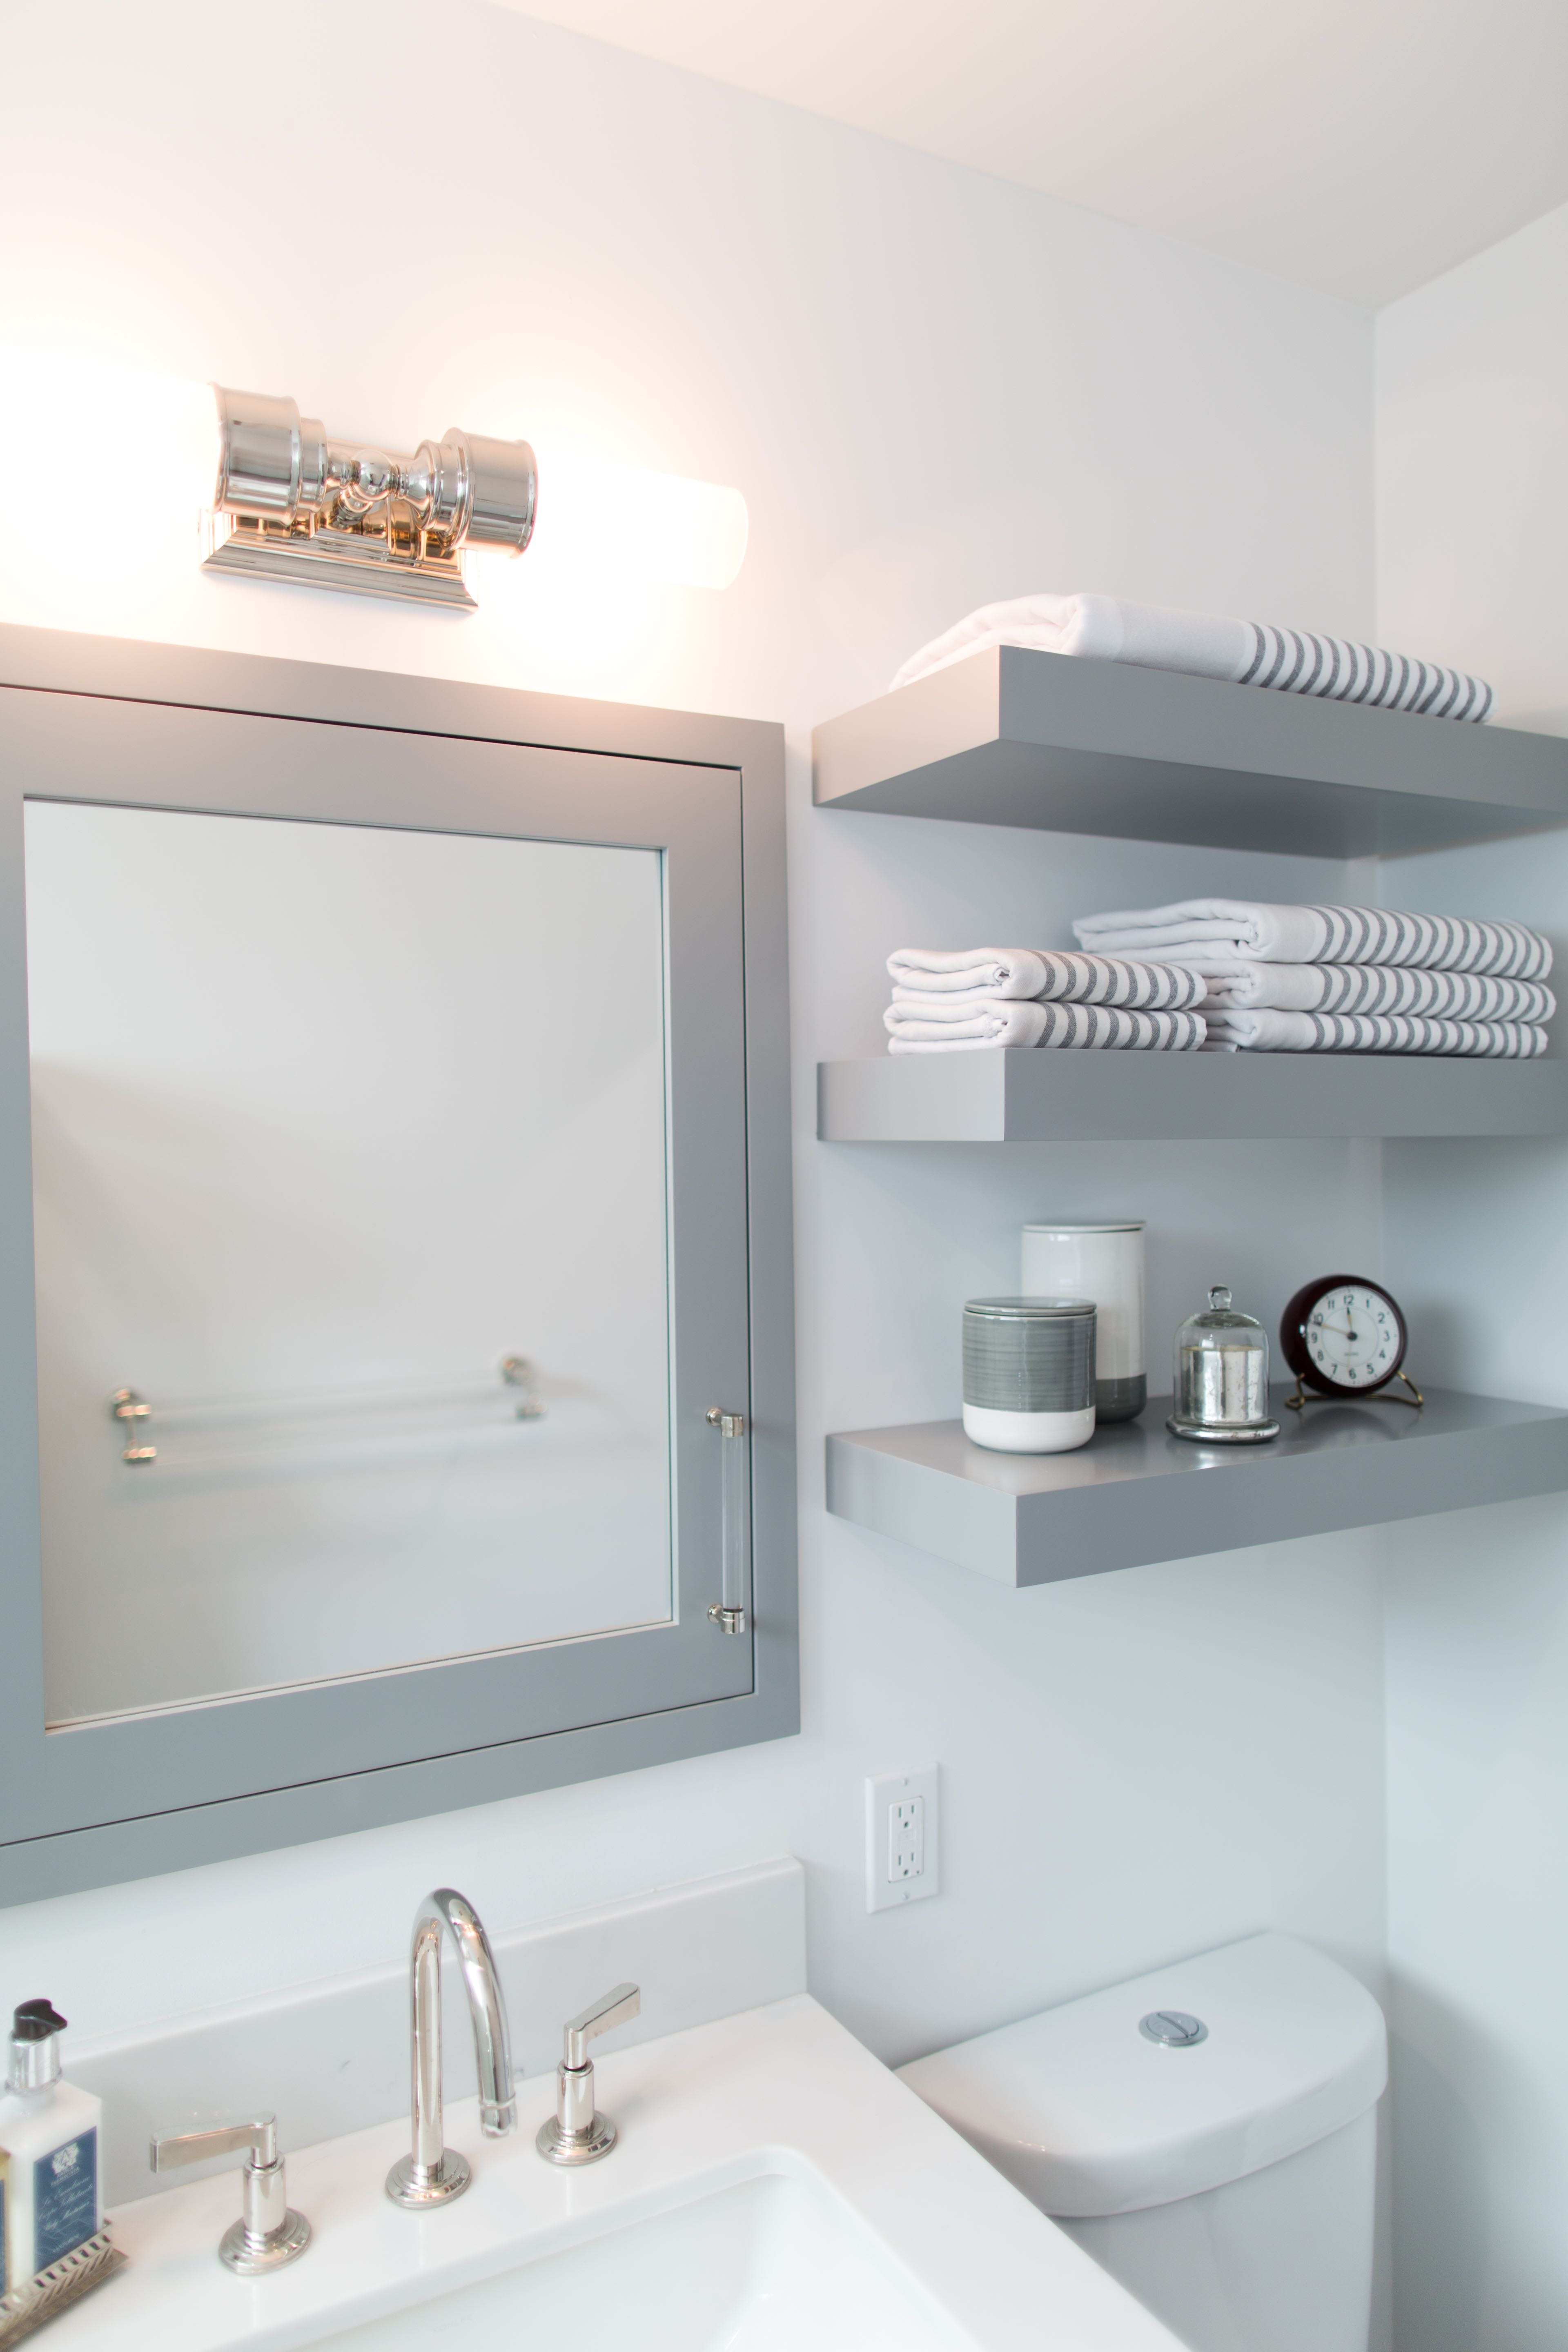 Custom Vanity With Storage Built Into The Medicine Cabinet And Floating Shelving For Storage And Display Kuzak S Closet